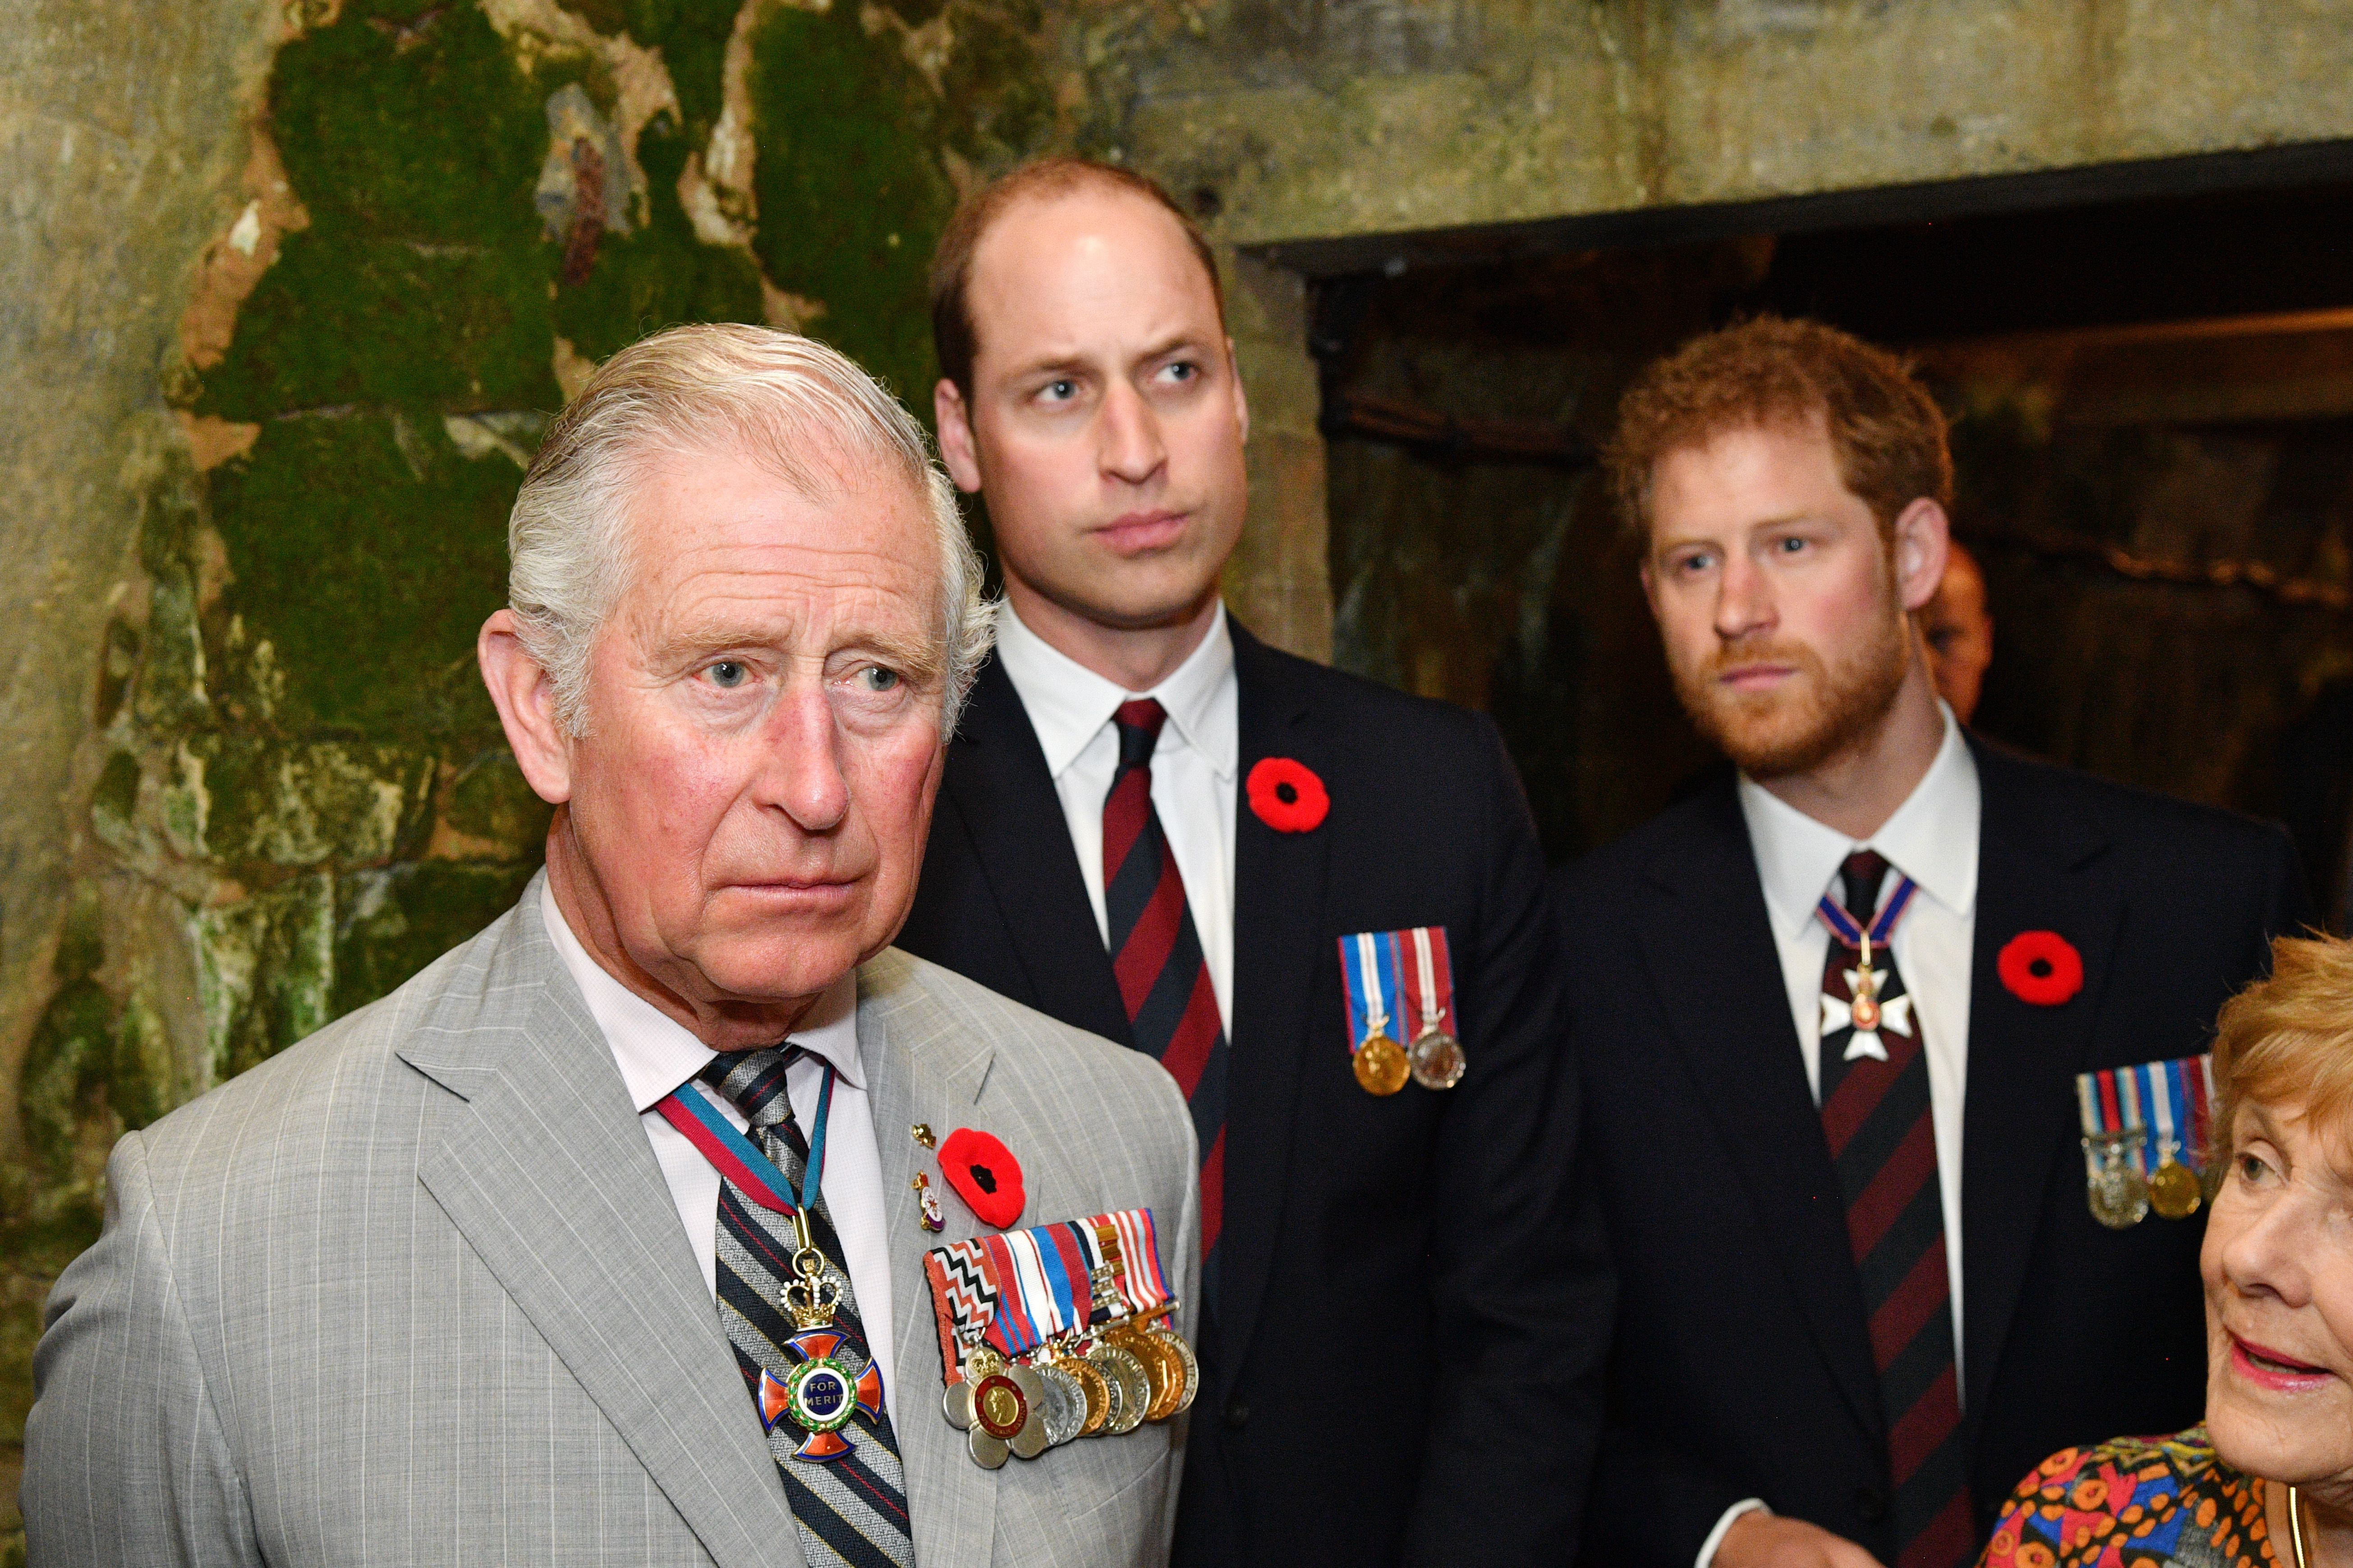 Prince Charles, Prince William and Prince Harry pictured at the tunnel and trenches at Vimy Memorial Park, 2009, Vimy, France. | Photo: Getty Images